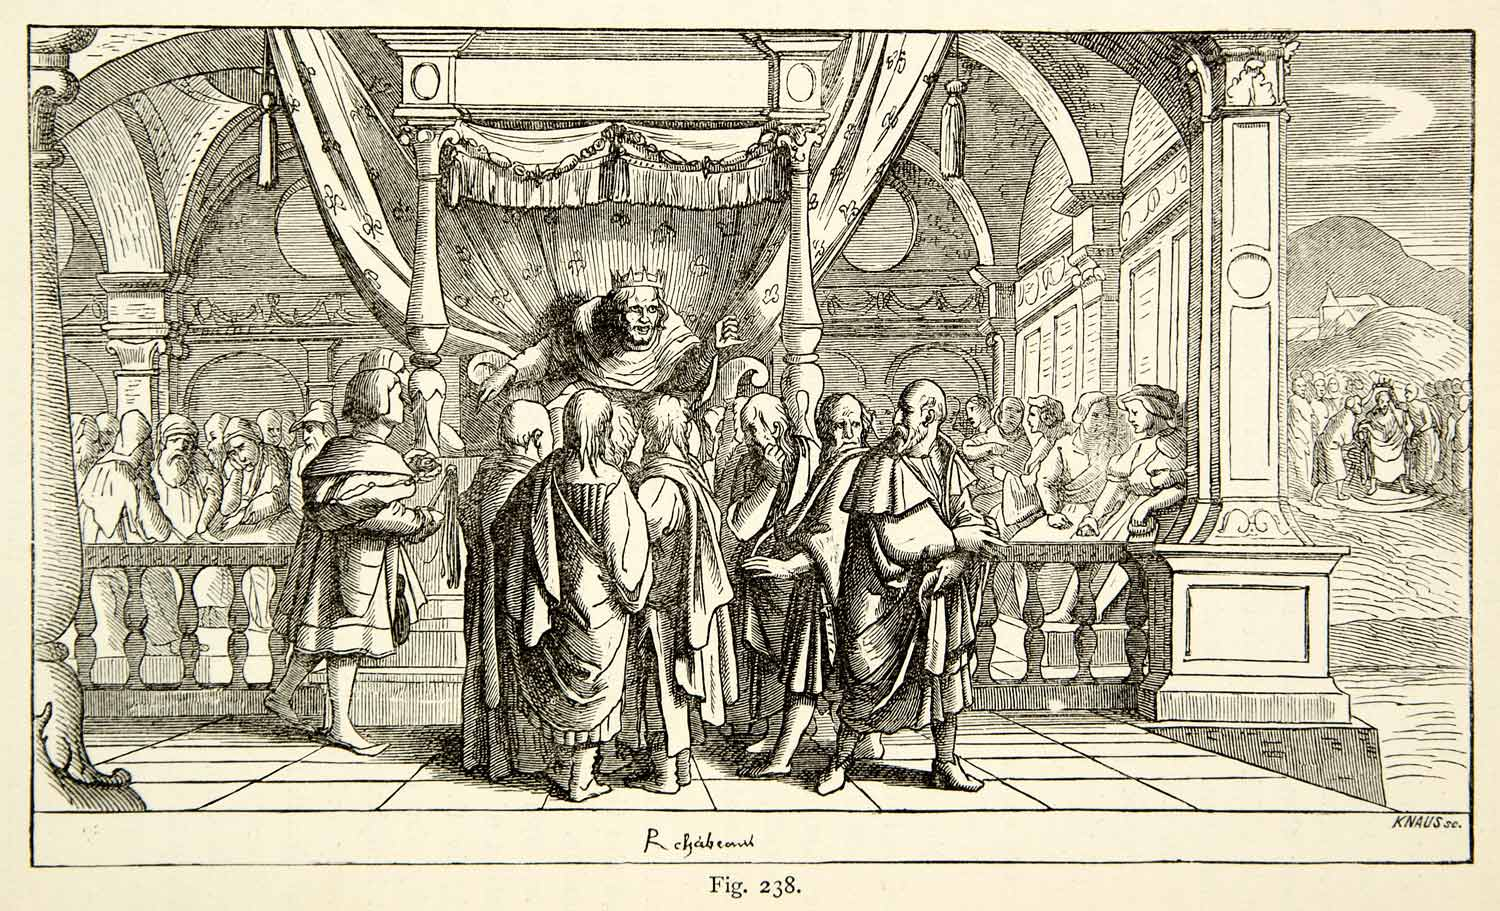 1888 Wood Engraving Rehoboam Hans Holbein Royalty Throne Interior King XACA9